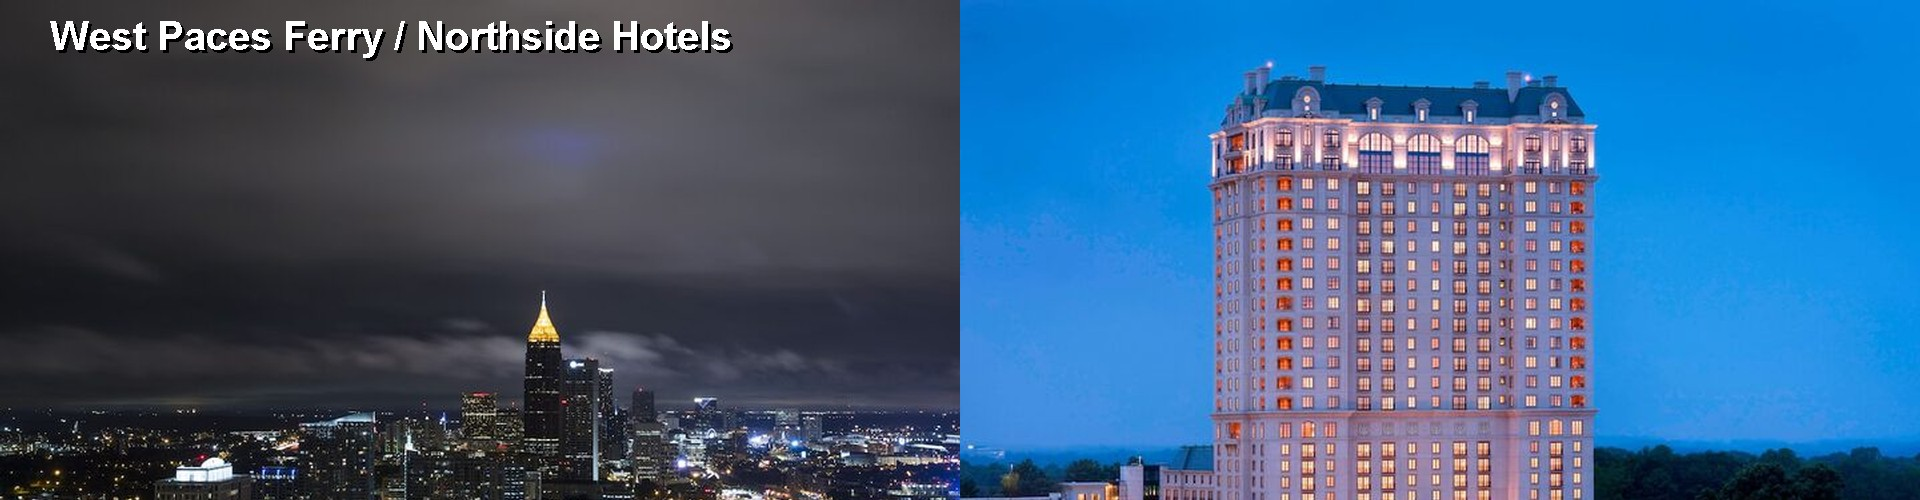 5 Best Hotels near West Paces Ferry / Northside